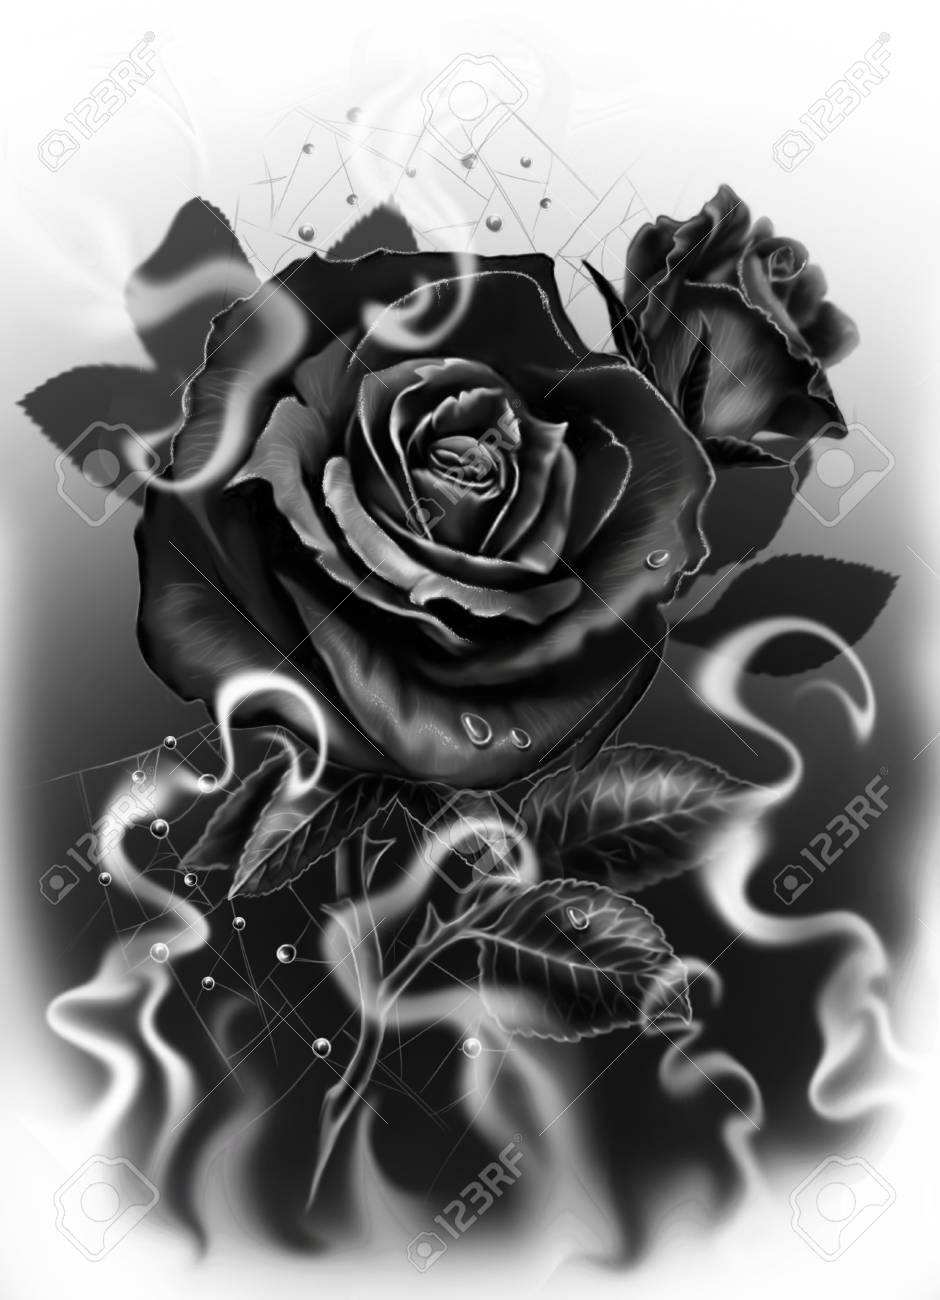 Black Rose In Black And White As A Sketch For A Tattoo Stock Photo